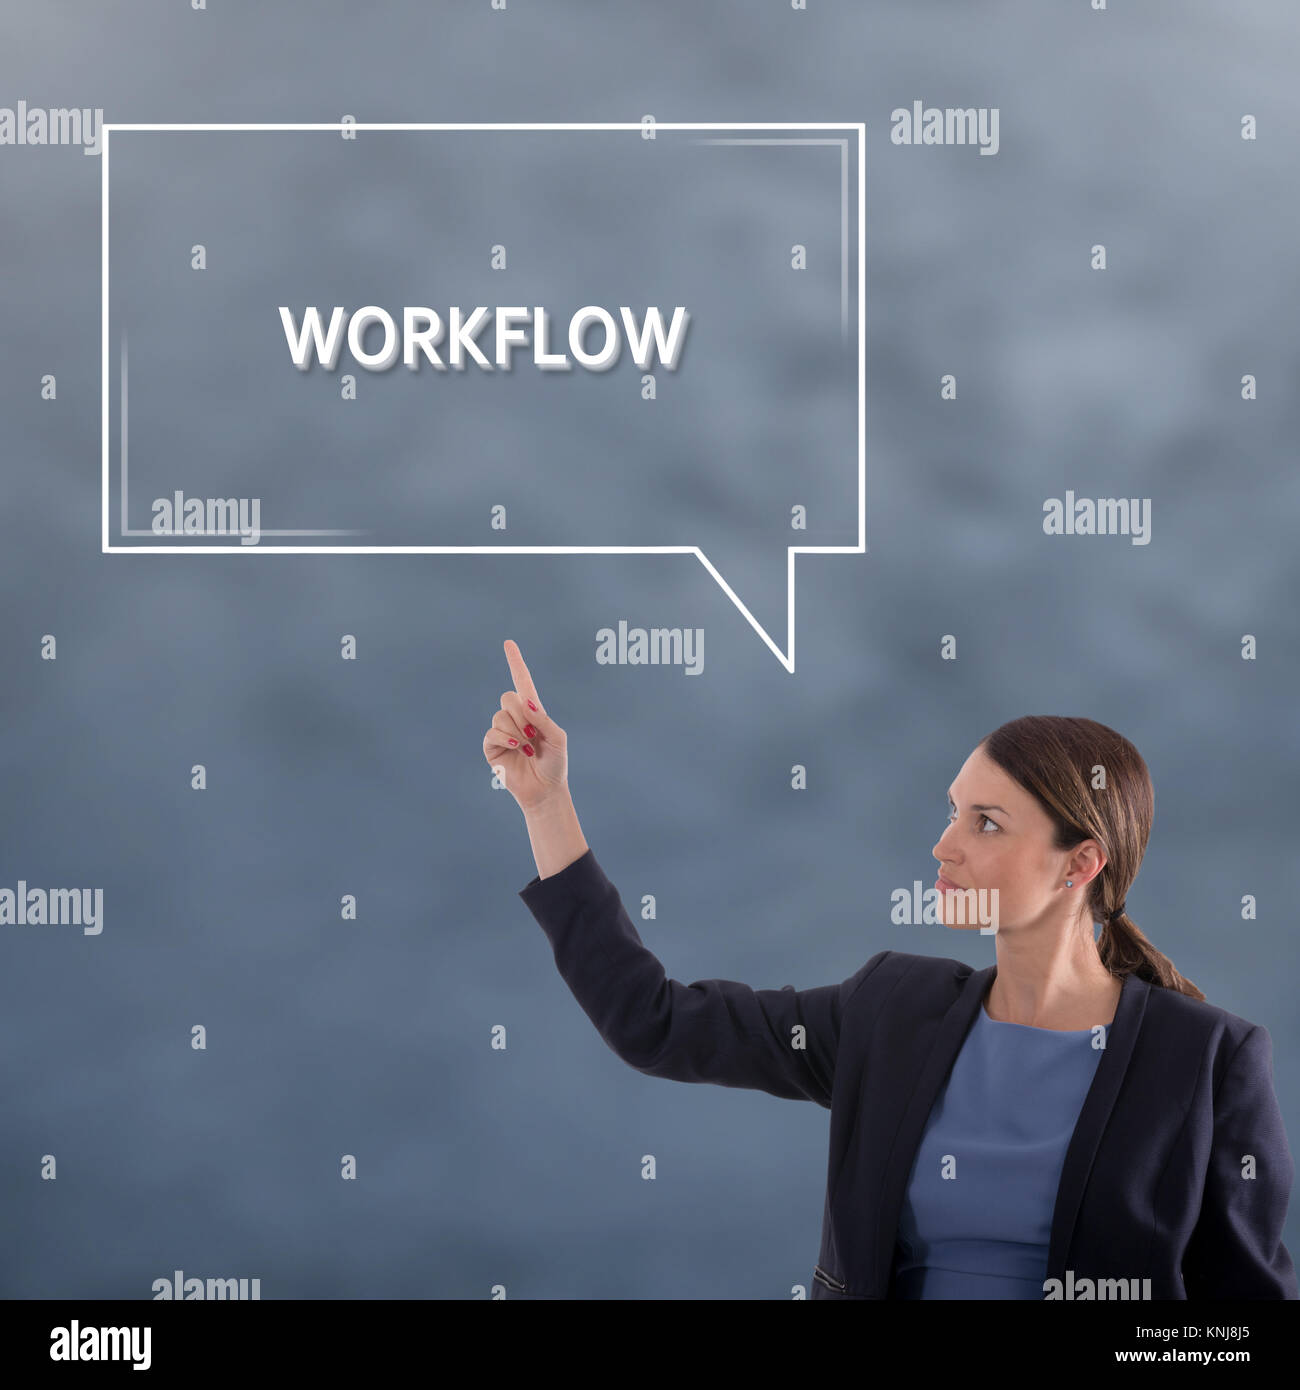 WORKFLOW Business Concept. Business Woman Graphic Concept - Stock Image